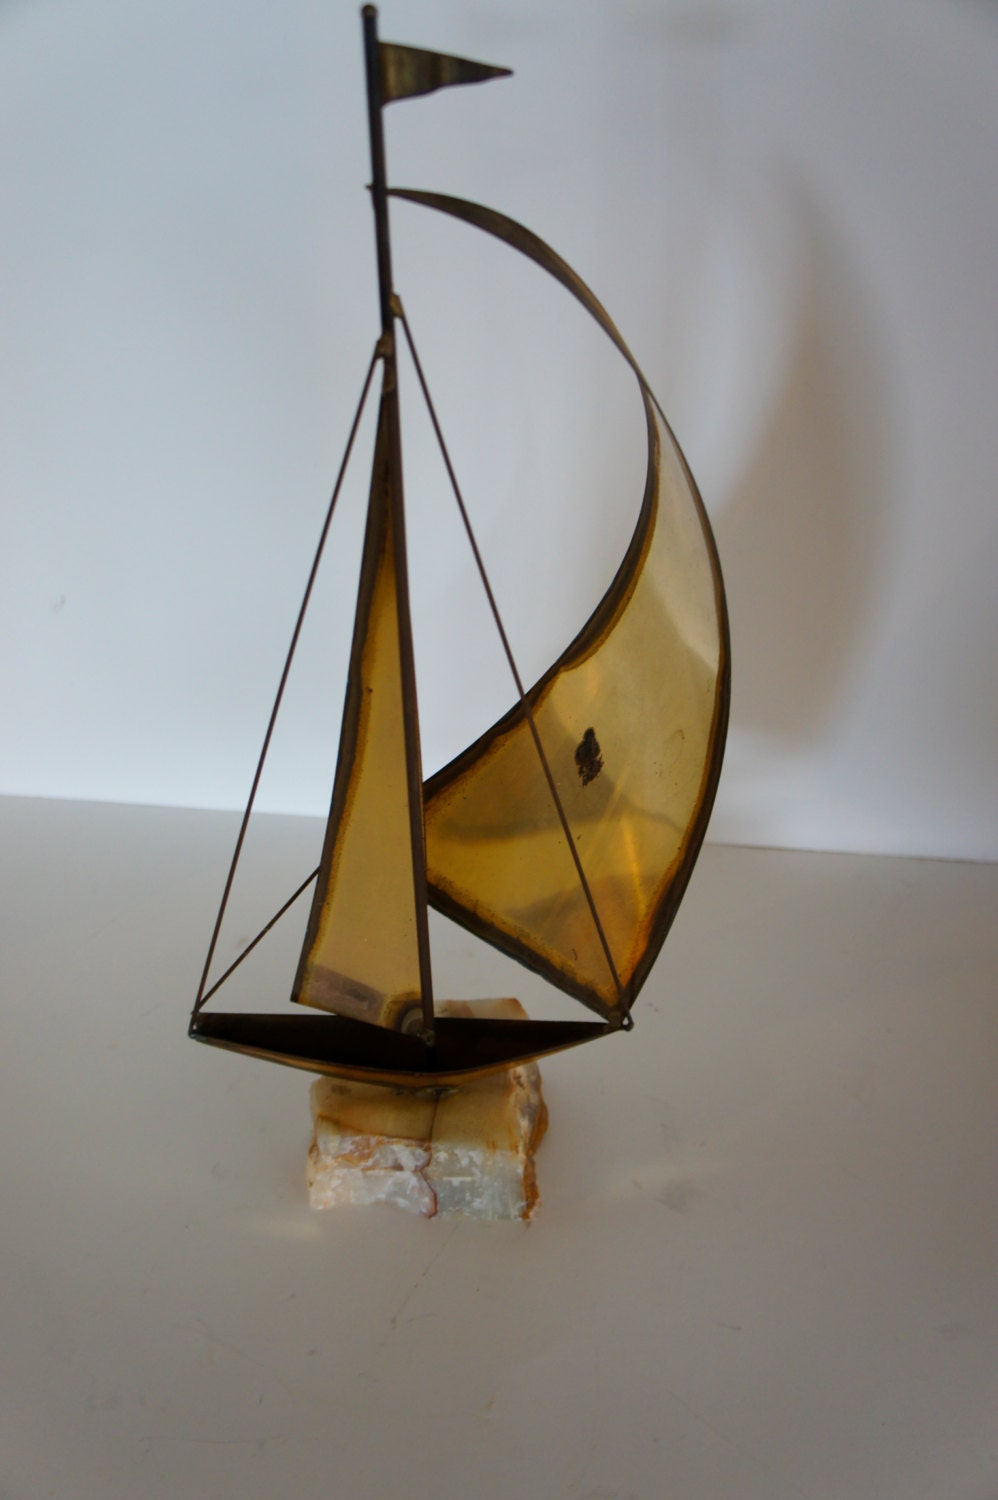 Https Etsy Com Listing 157290397 Vintage Home Decor Brass Sailboat On